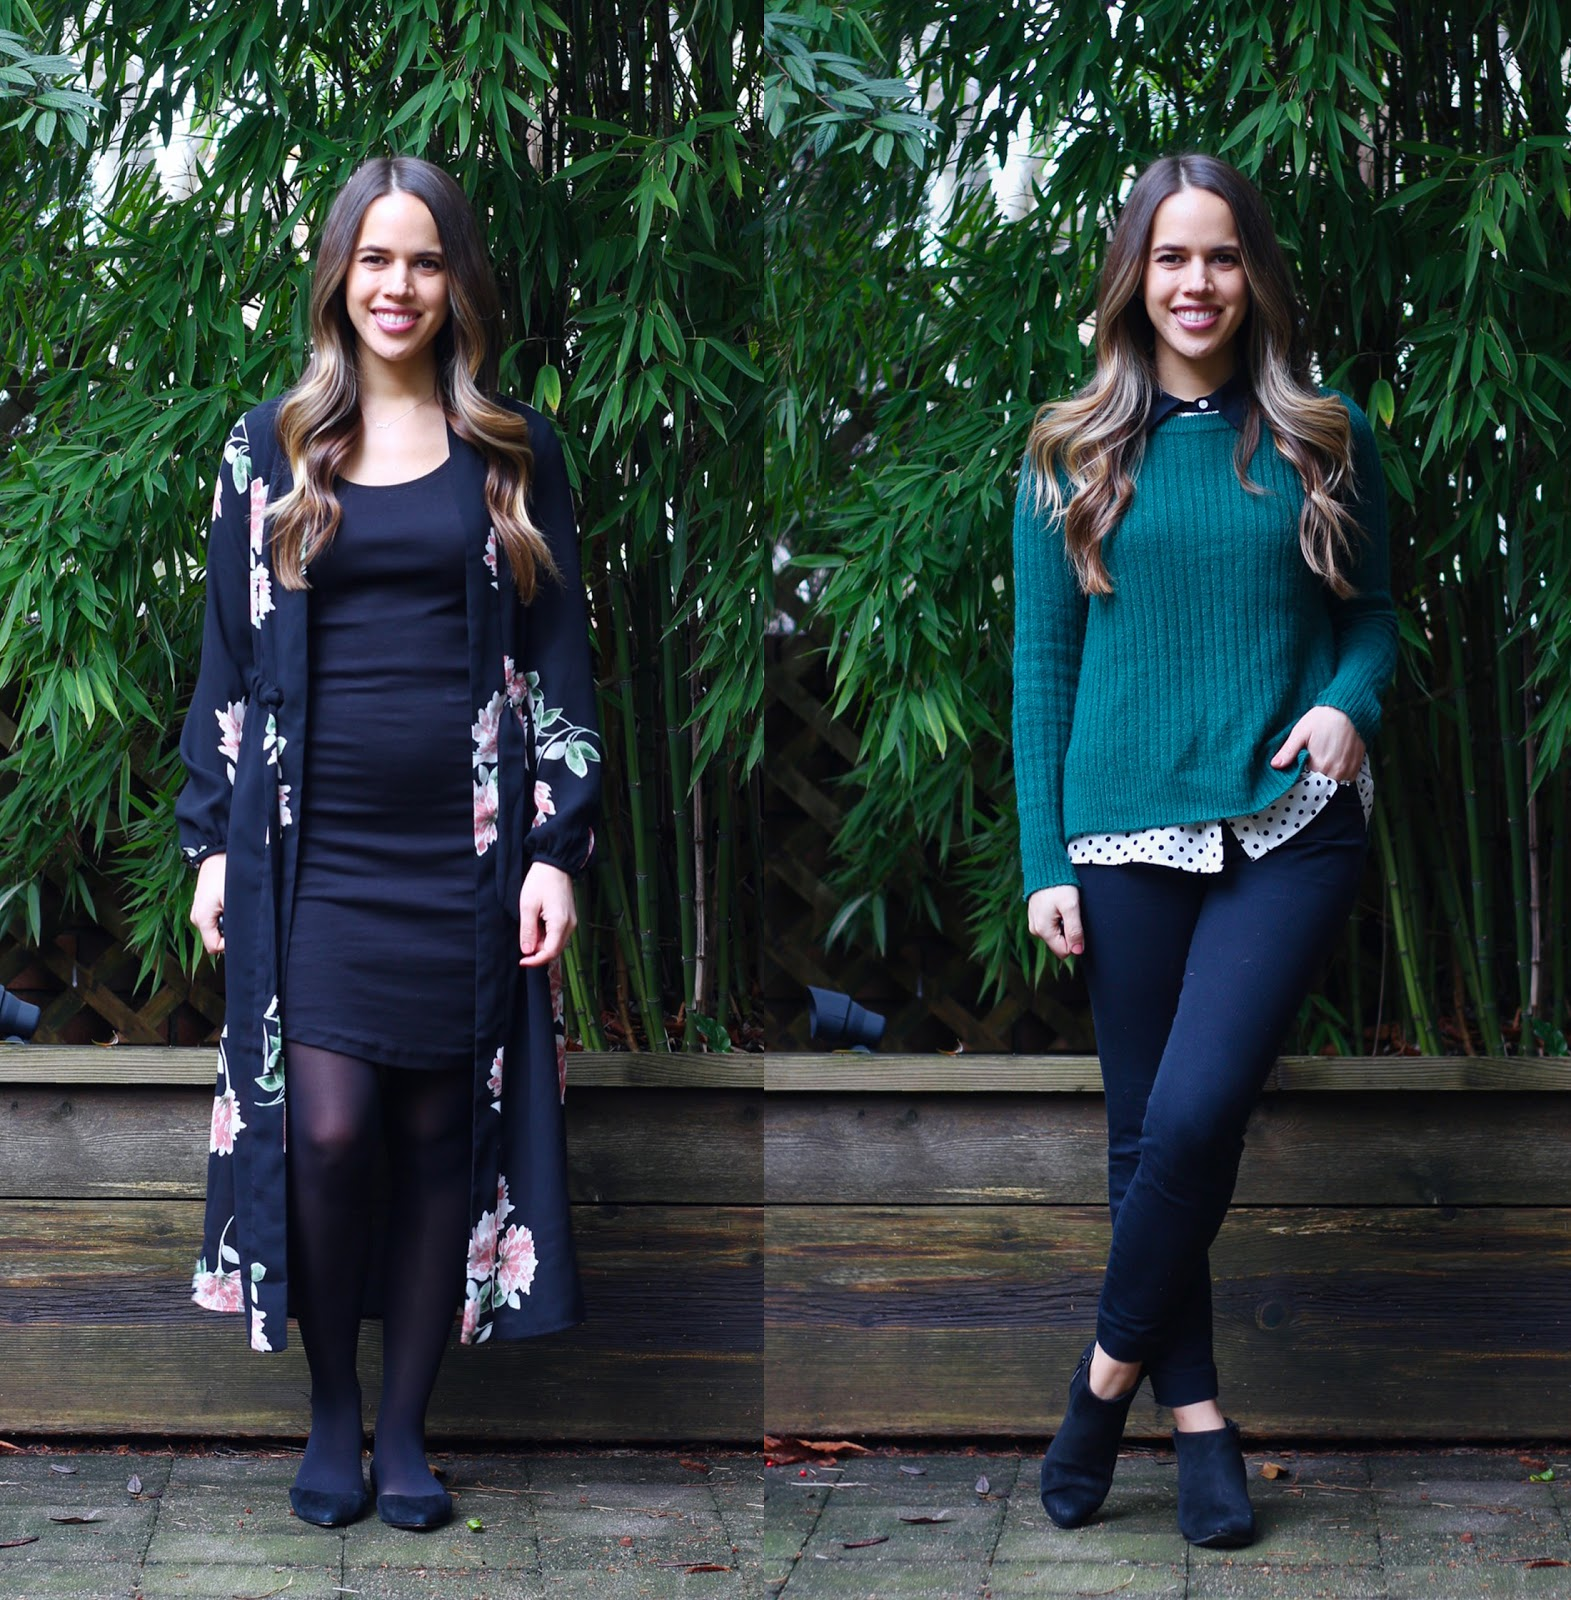 Jules in Flats - January Outfits Week One (Business Casual Workwear on a Budget)